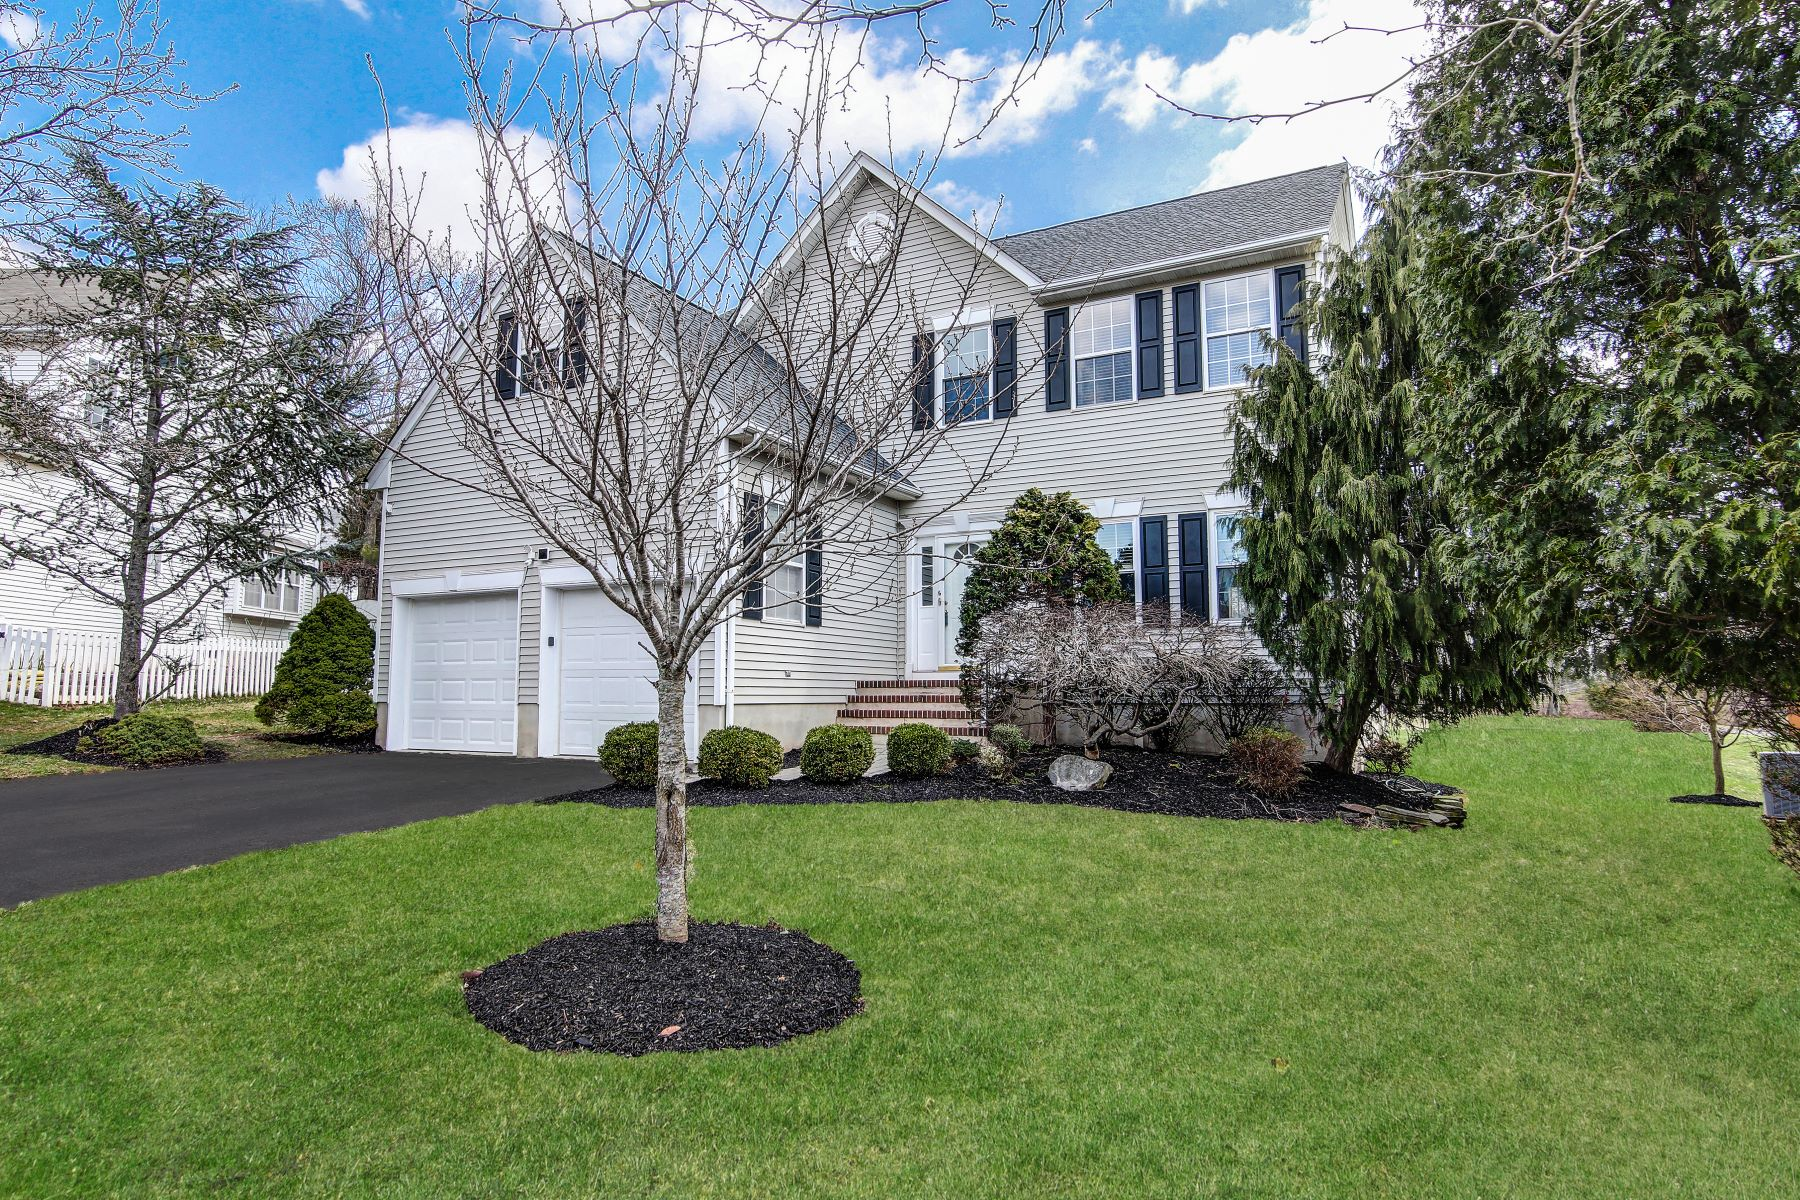 House for Sale at Beautifully Updated Colonial 72 Huntley Way Bridgewater, New Jersey 08807 United States